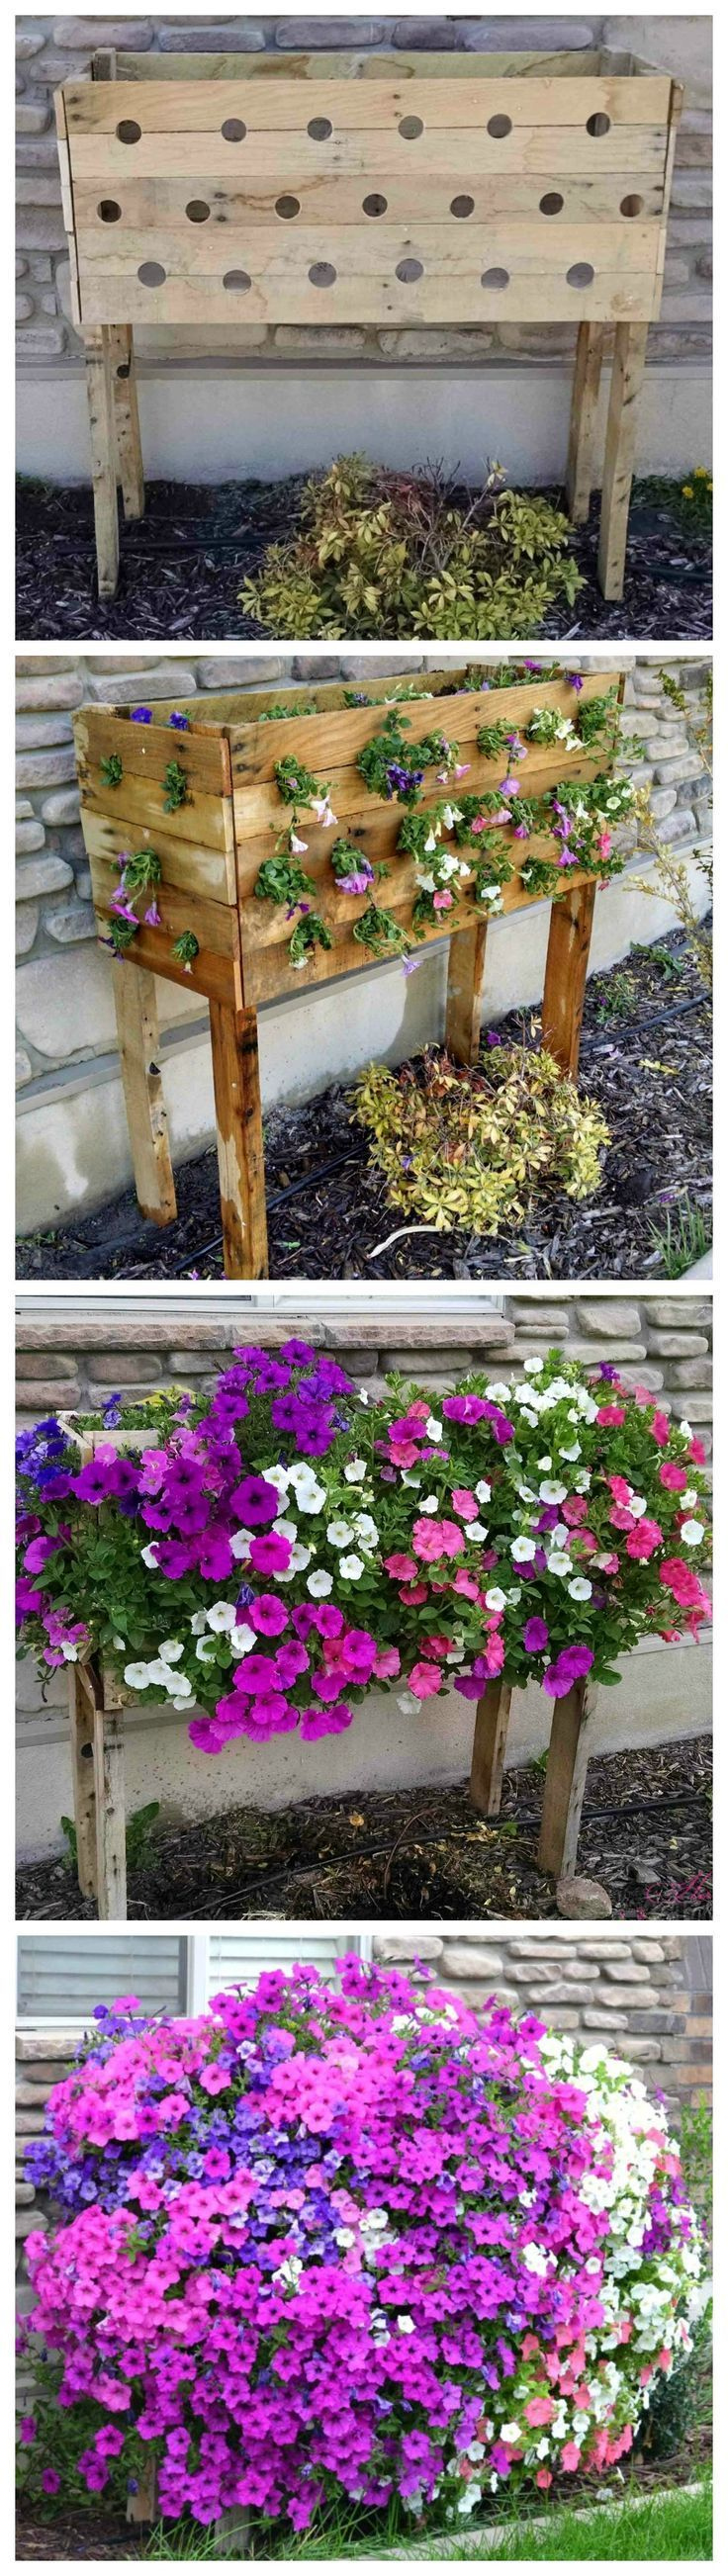 How to Build a Cascading Flower Pallet Planter Box ~ Pallet Planter Box For Cascading Flowers #gardeninghowto